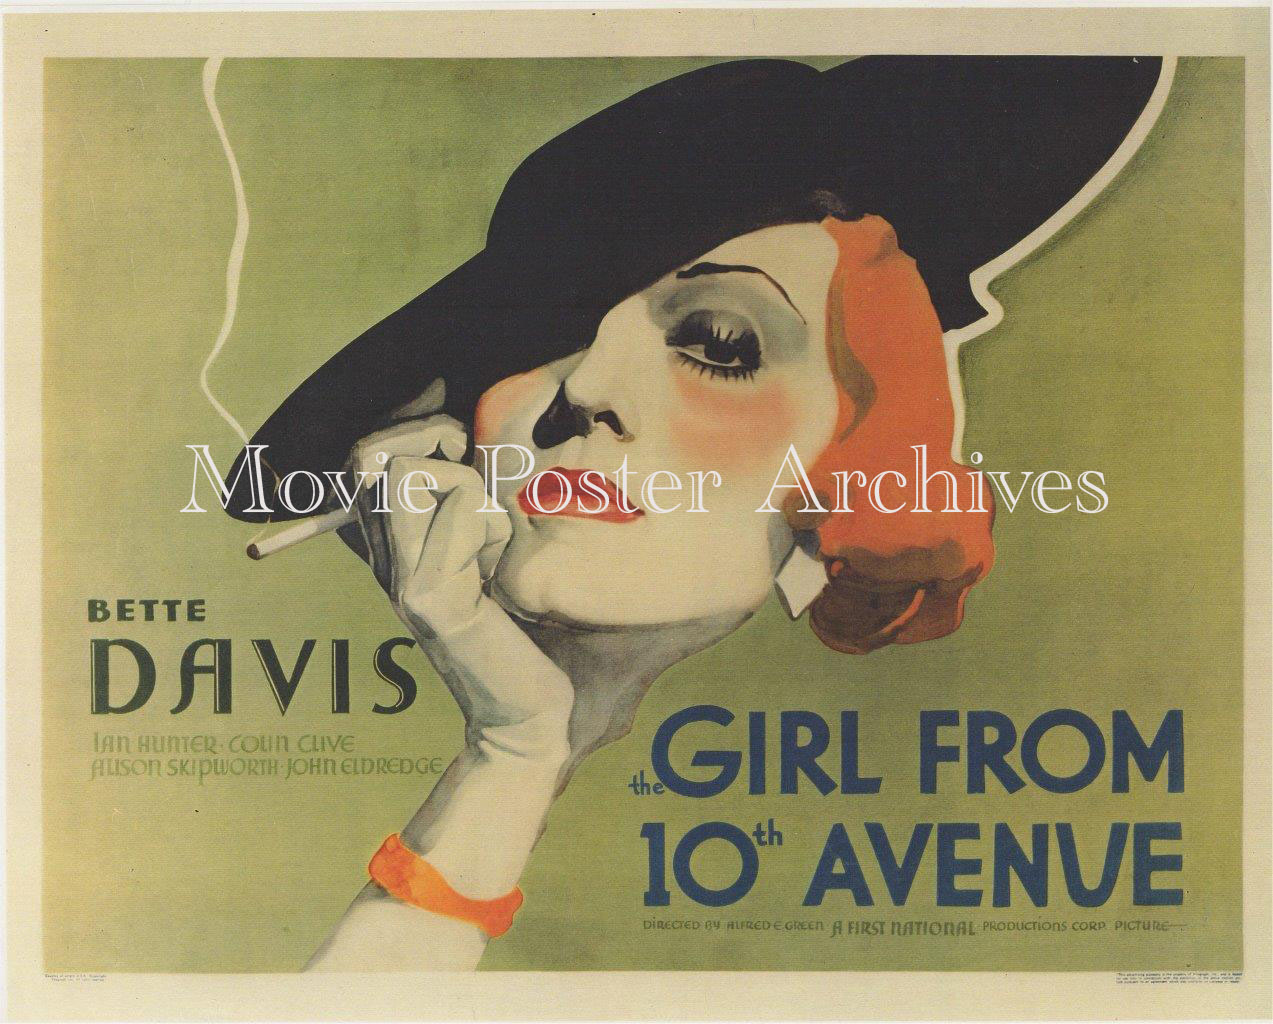 GirlFrom10thavenue-1935-Repro-TC